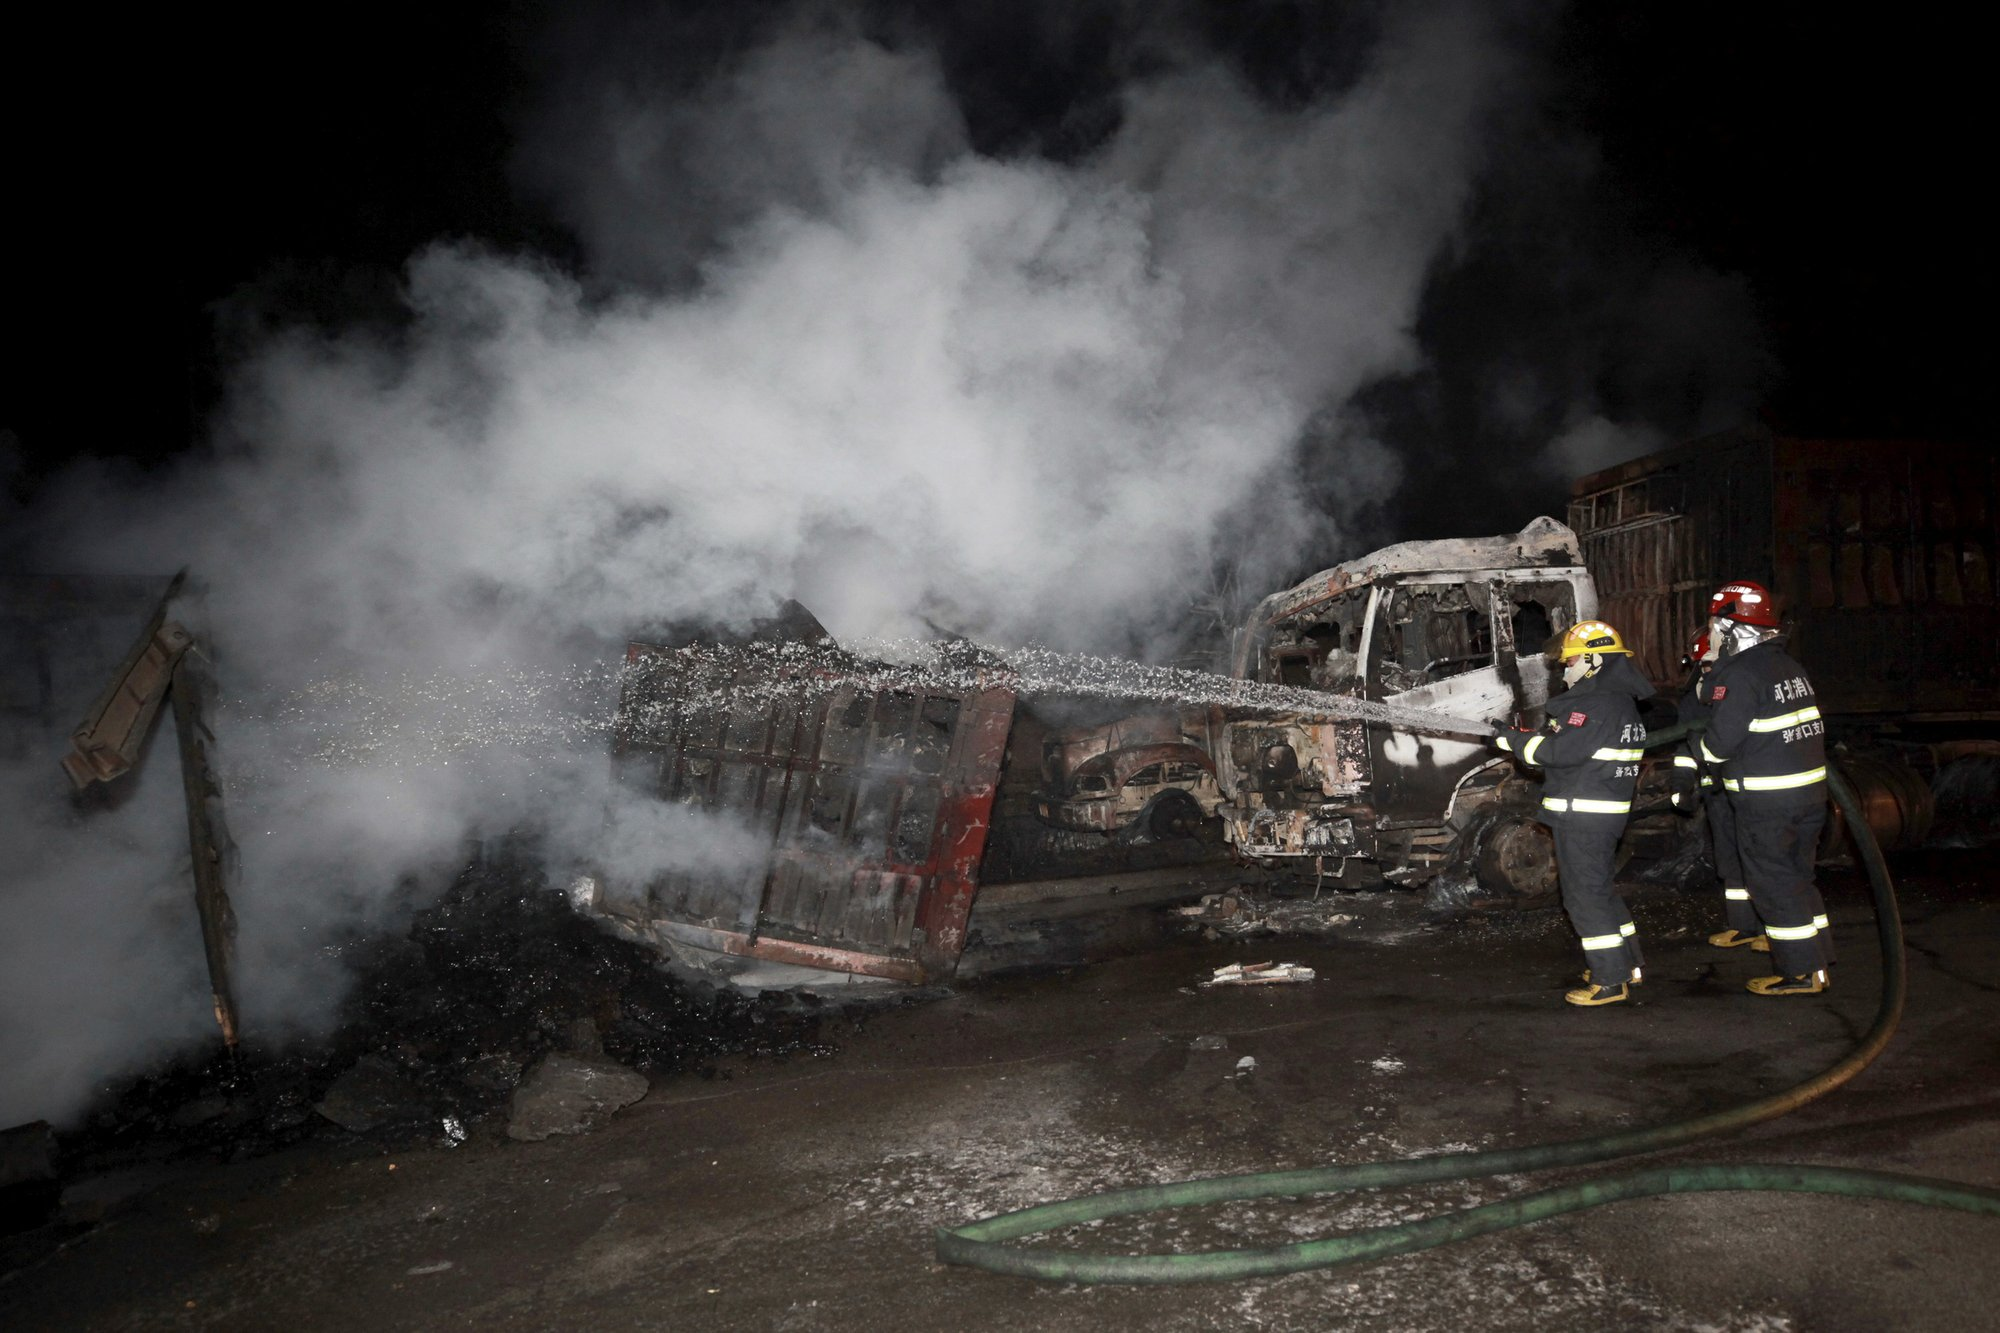 In this photo released by Xinhua News Agency, firefighters try to extinguish burning vehicles in the aftermath of an explosion at a plant operated by the Hebei Shenghua Chemical Industry Co. Ltd Wednesday, Nov. 28, 2018 in Zhangjiakou city, northeastern China's Hebei province.  Photo: AP